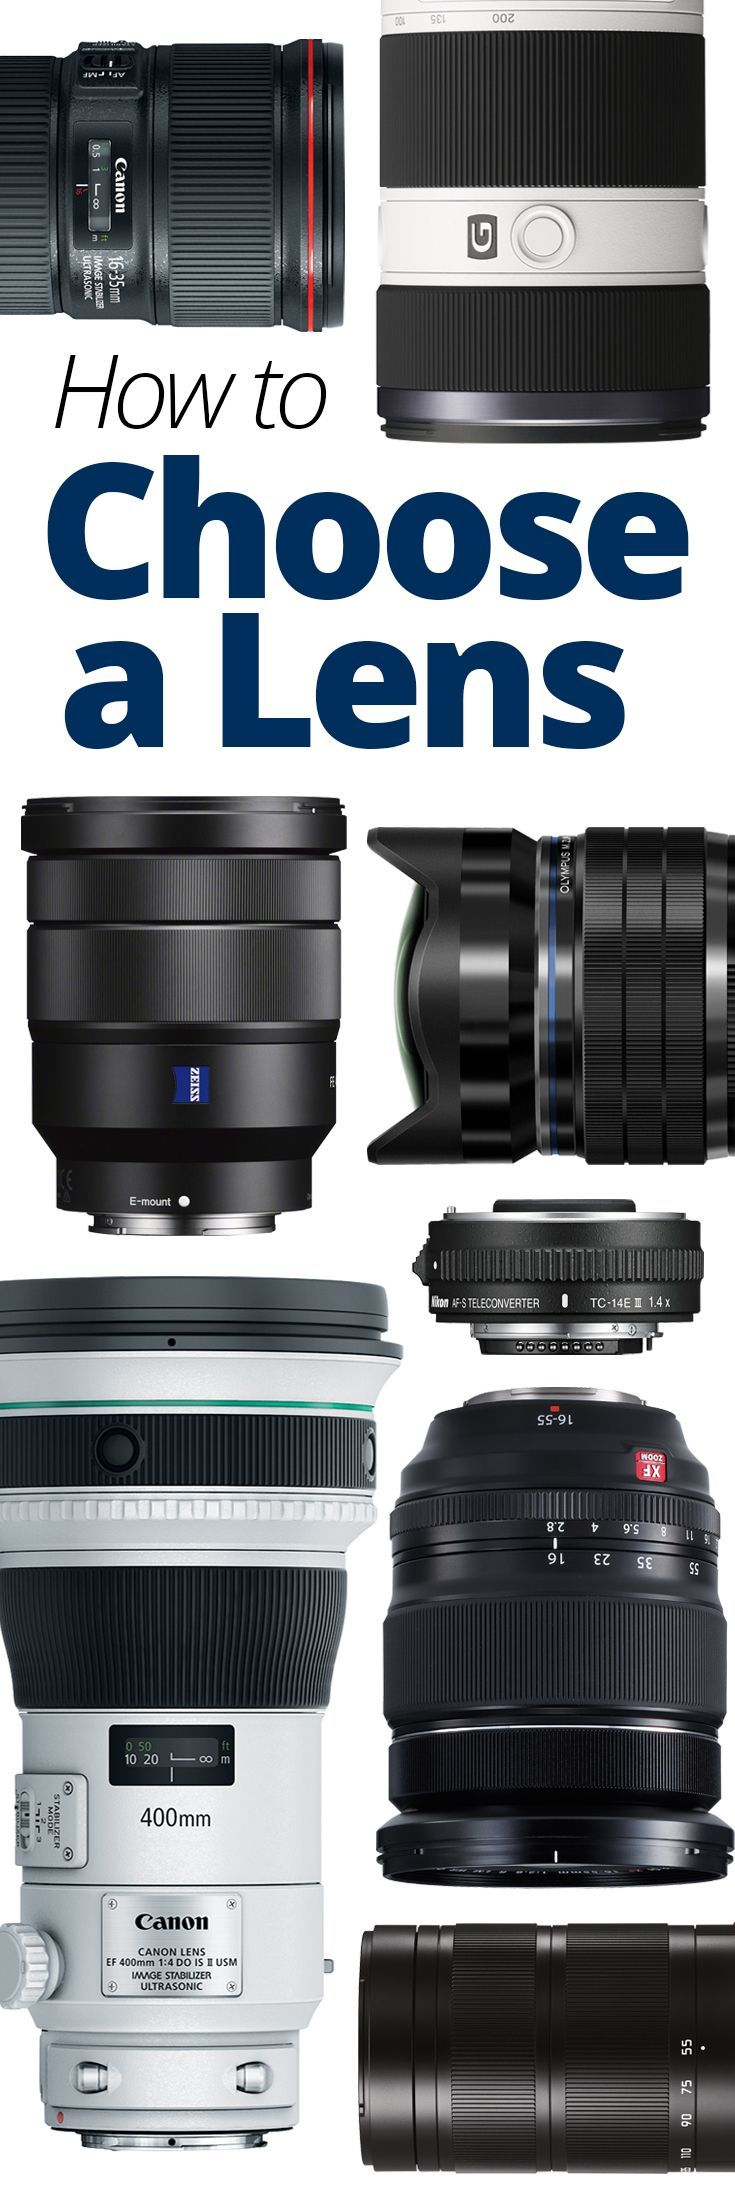 Find out how to determine compatibility with your camera. How to decide the focal length, aperture and image stabilization that is right for you. This article also covers common shooting scenarios like portraits, landscapes, indoor photography and nature photography - with information on the best lens types for each situation. Also other considerations like weight, care, storage, and cleaning.